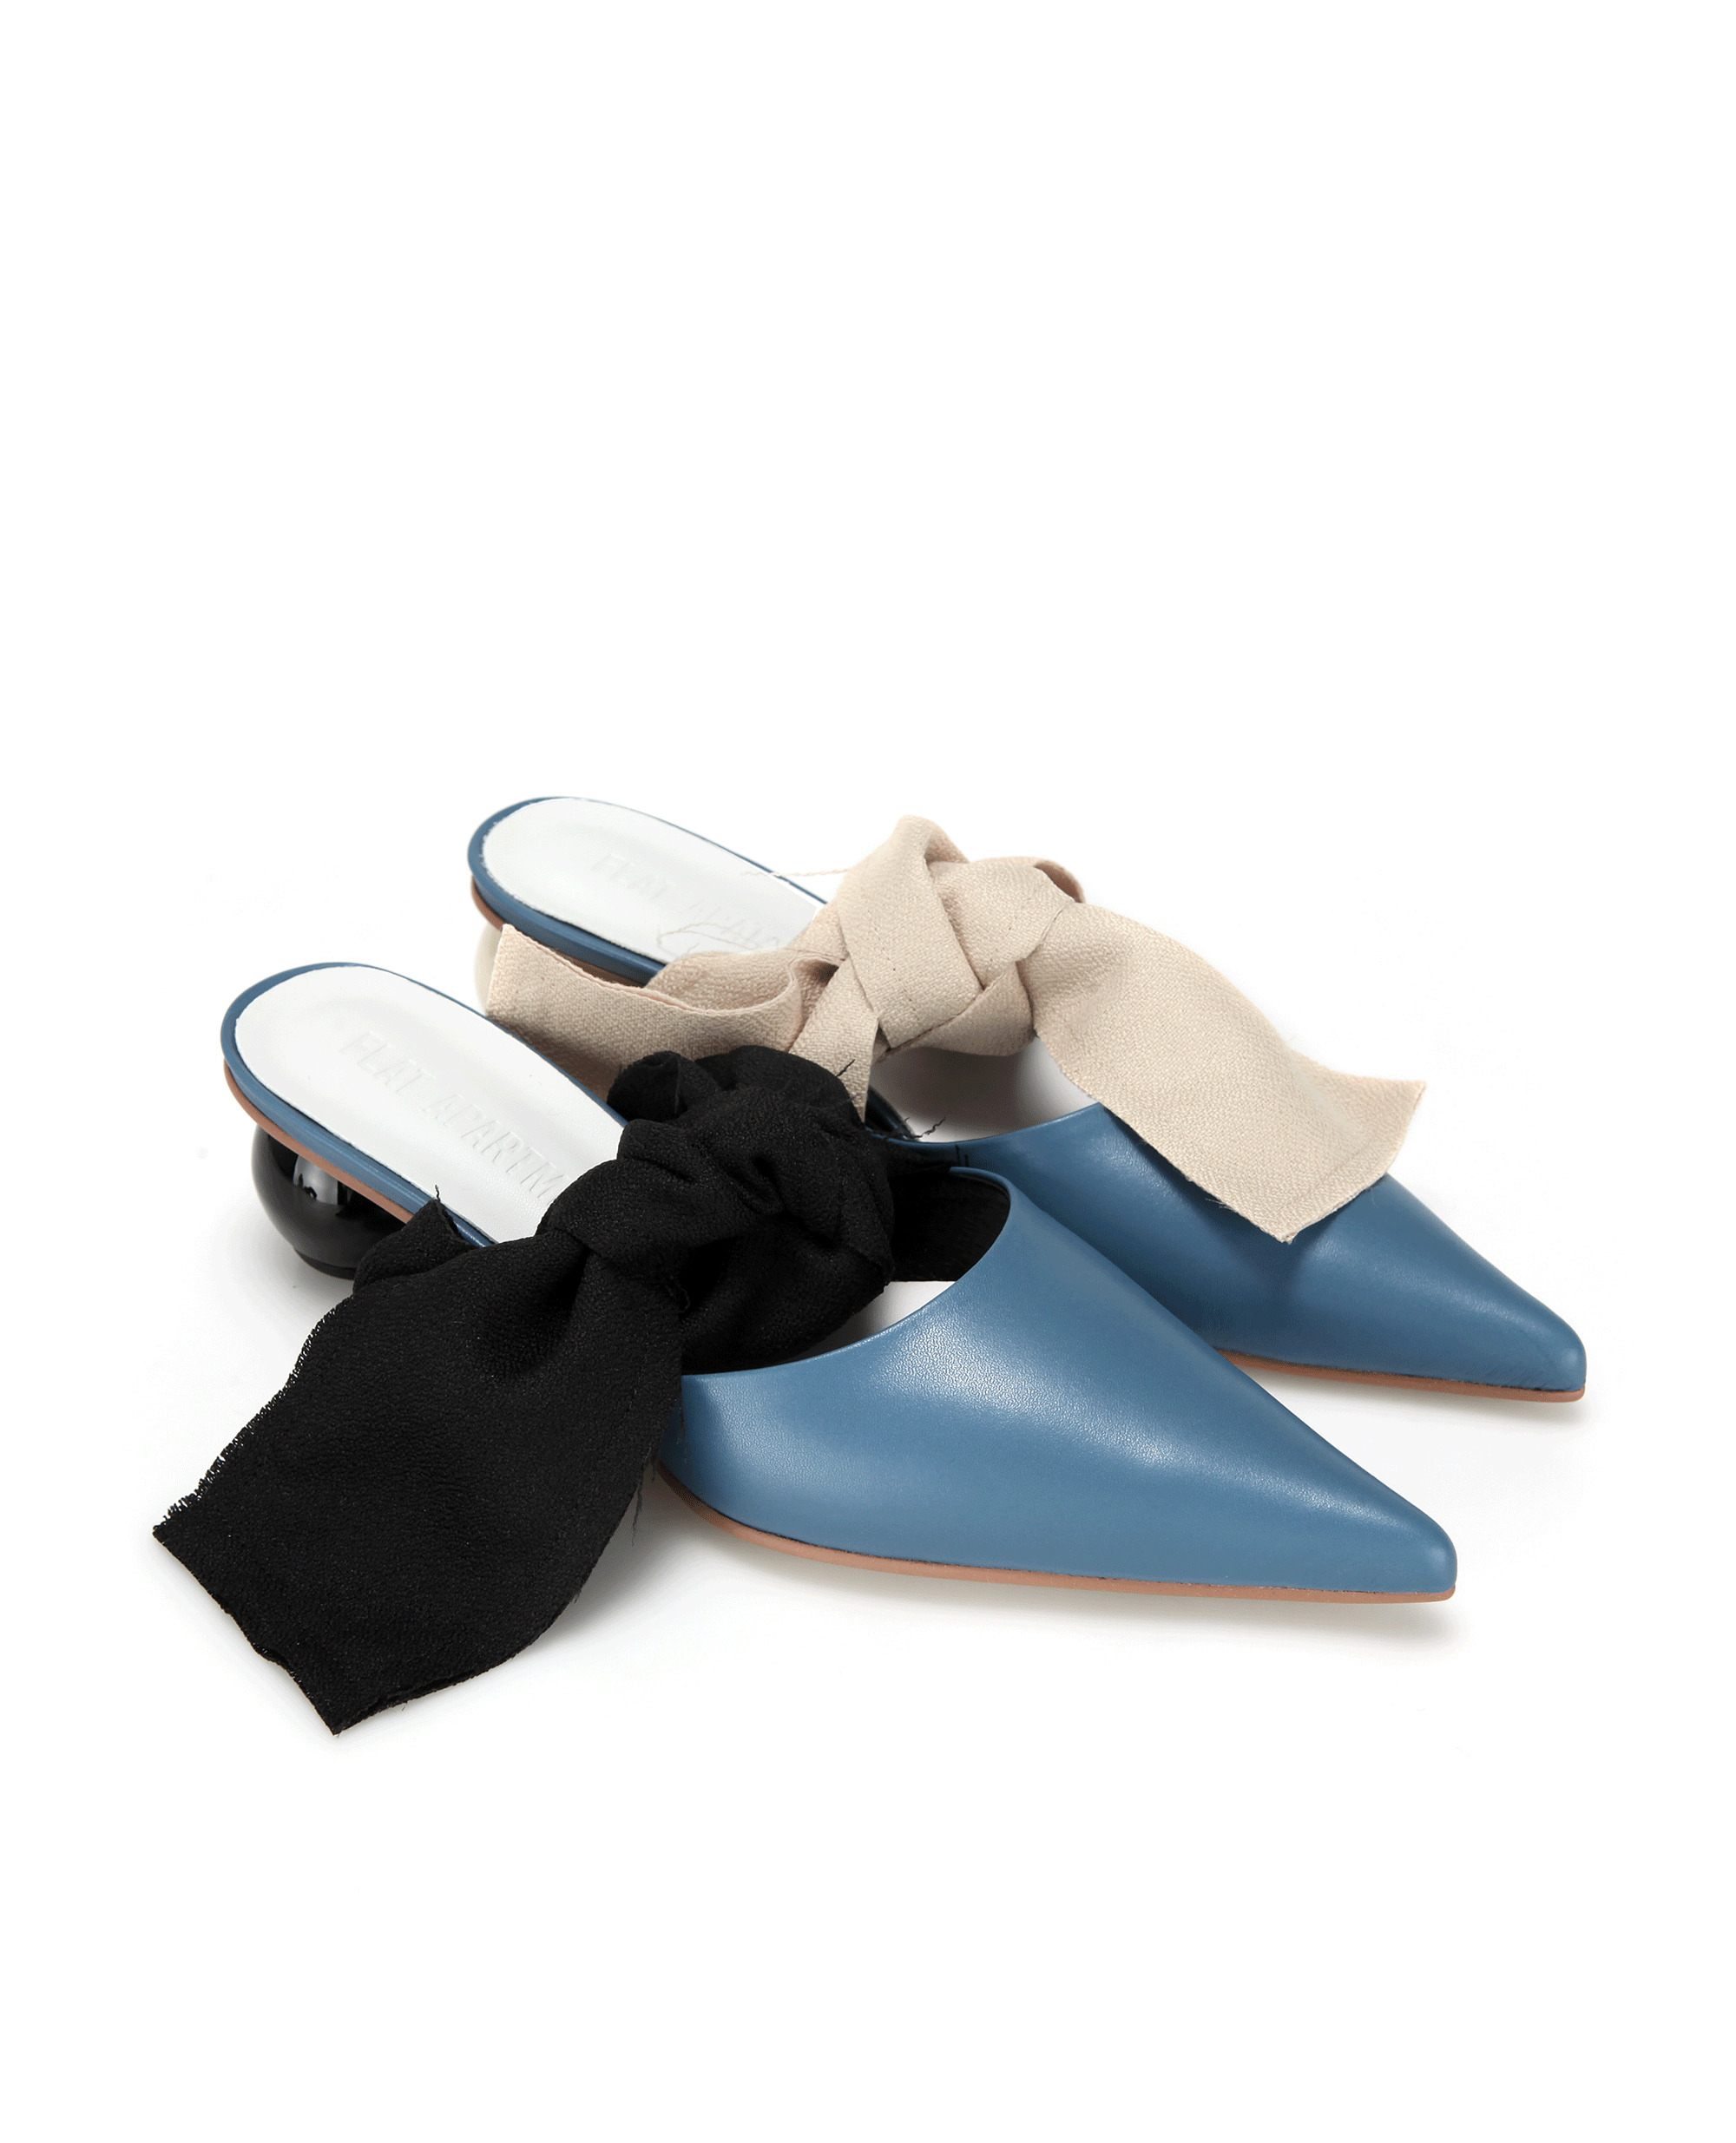 FLATAPARTMENT, SHOES, POINTEDTOE, SHARPTOE, MULES, SANDALS, SLIDES